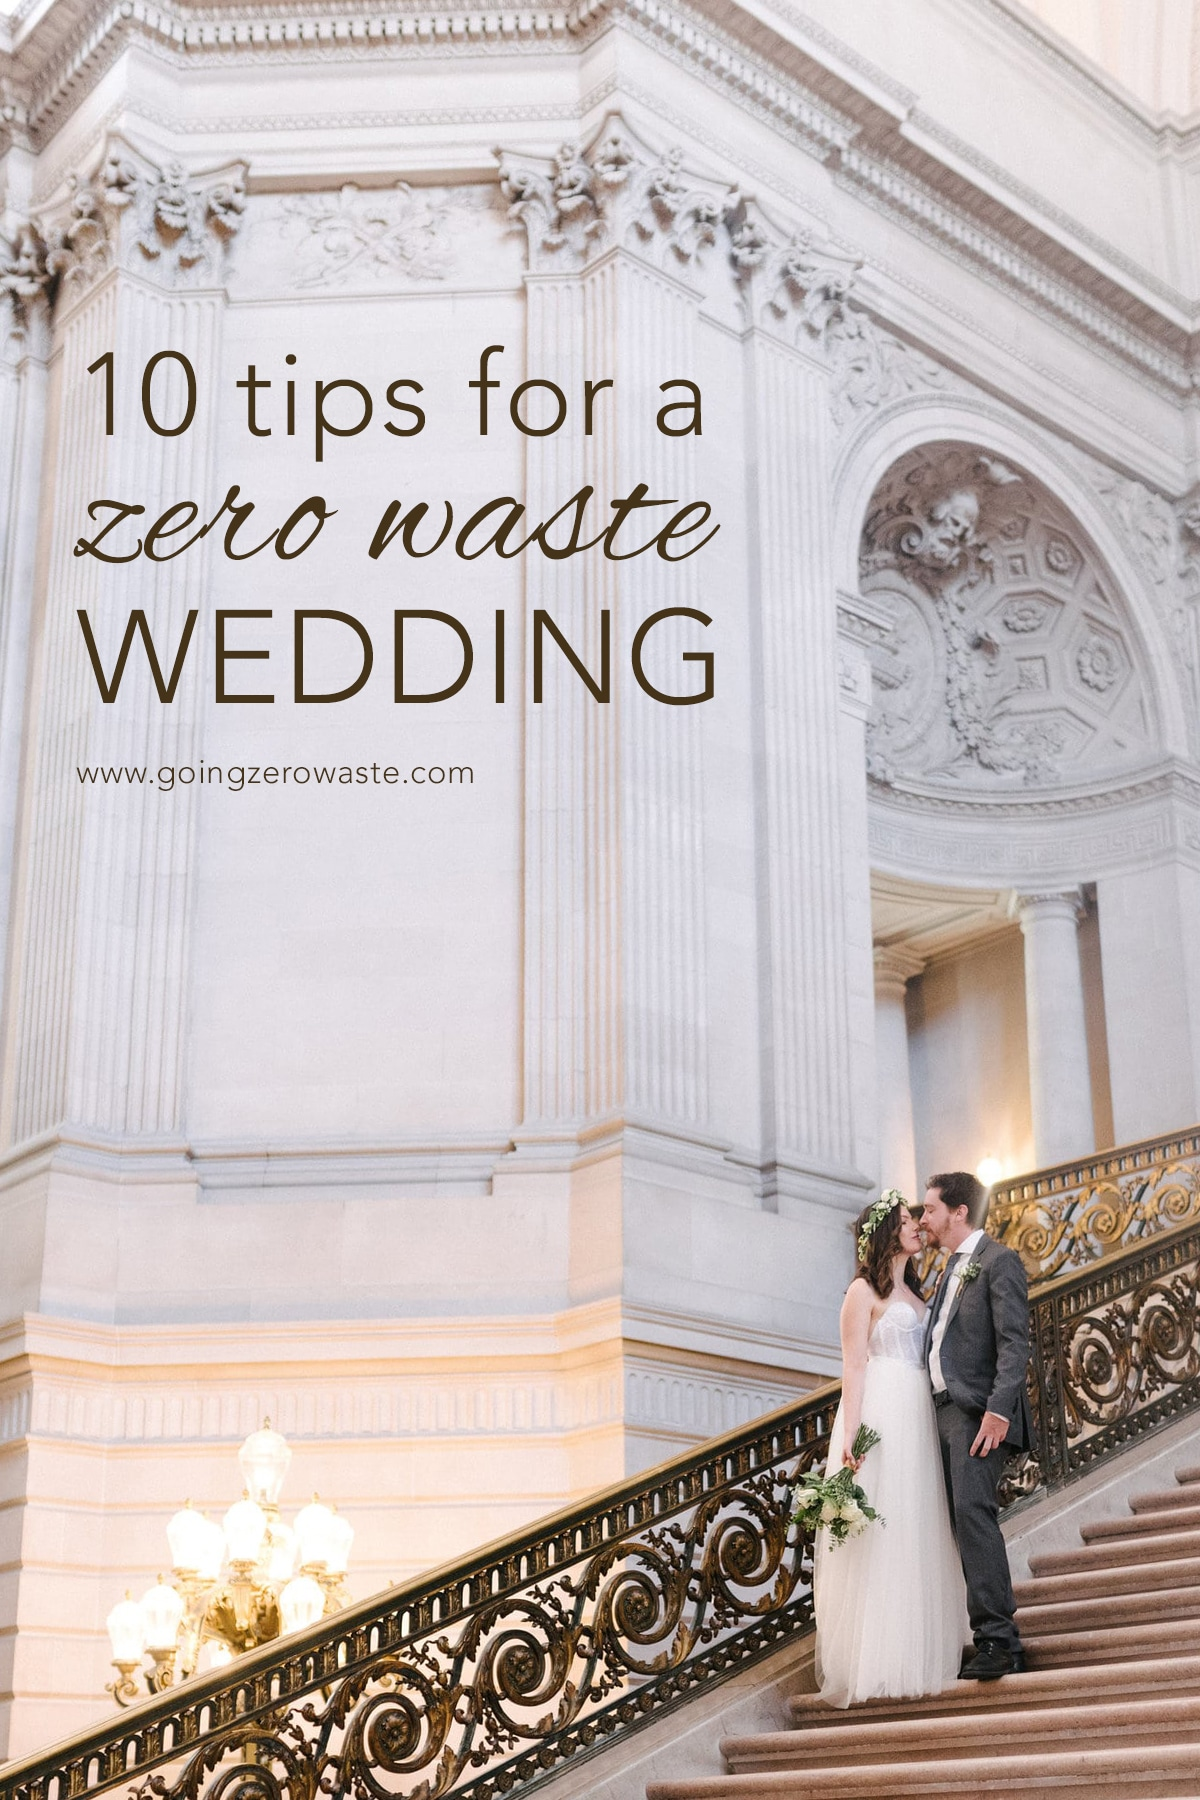 10 tips for a zero waste wedding